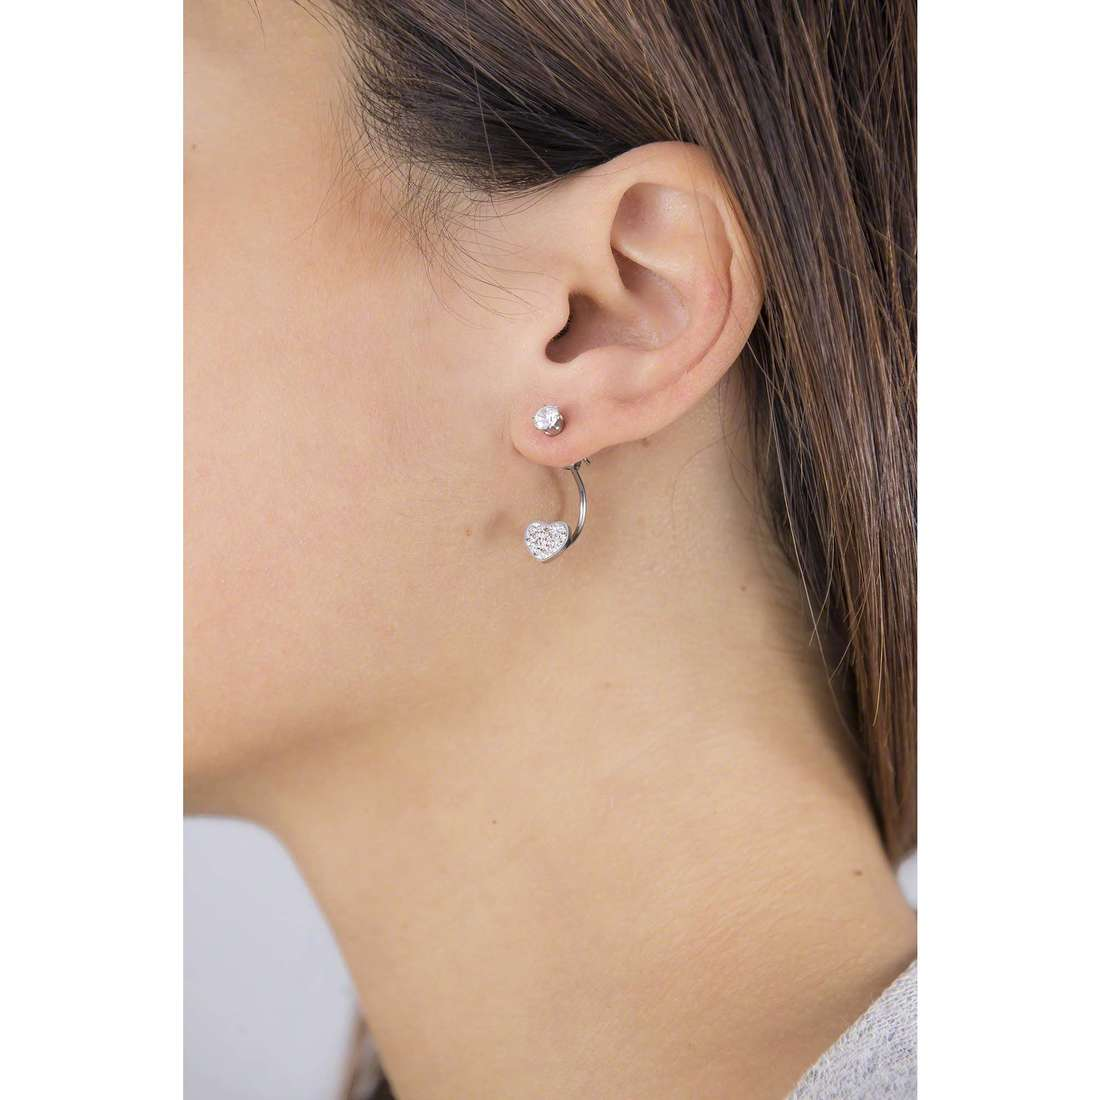 Marlù boucles d'oreille Time To femme 18OR038 indosso